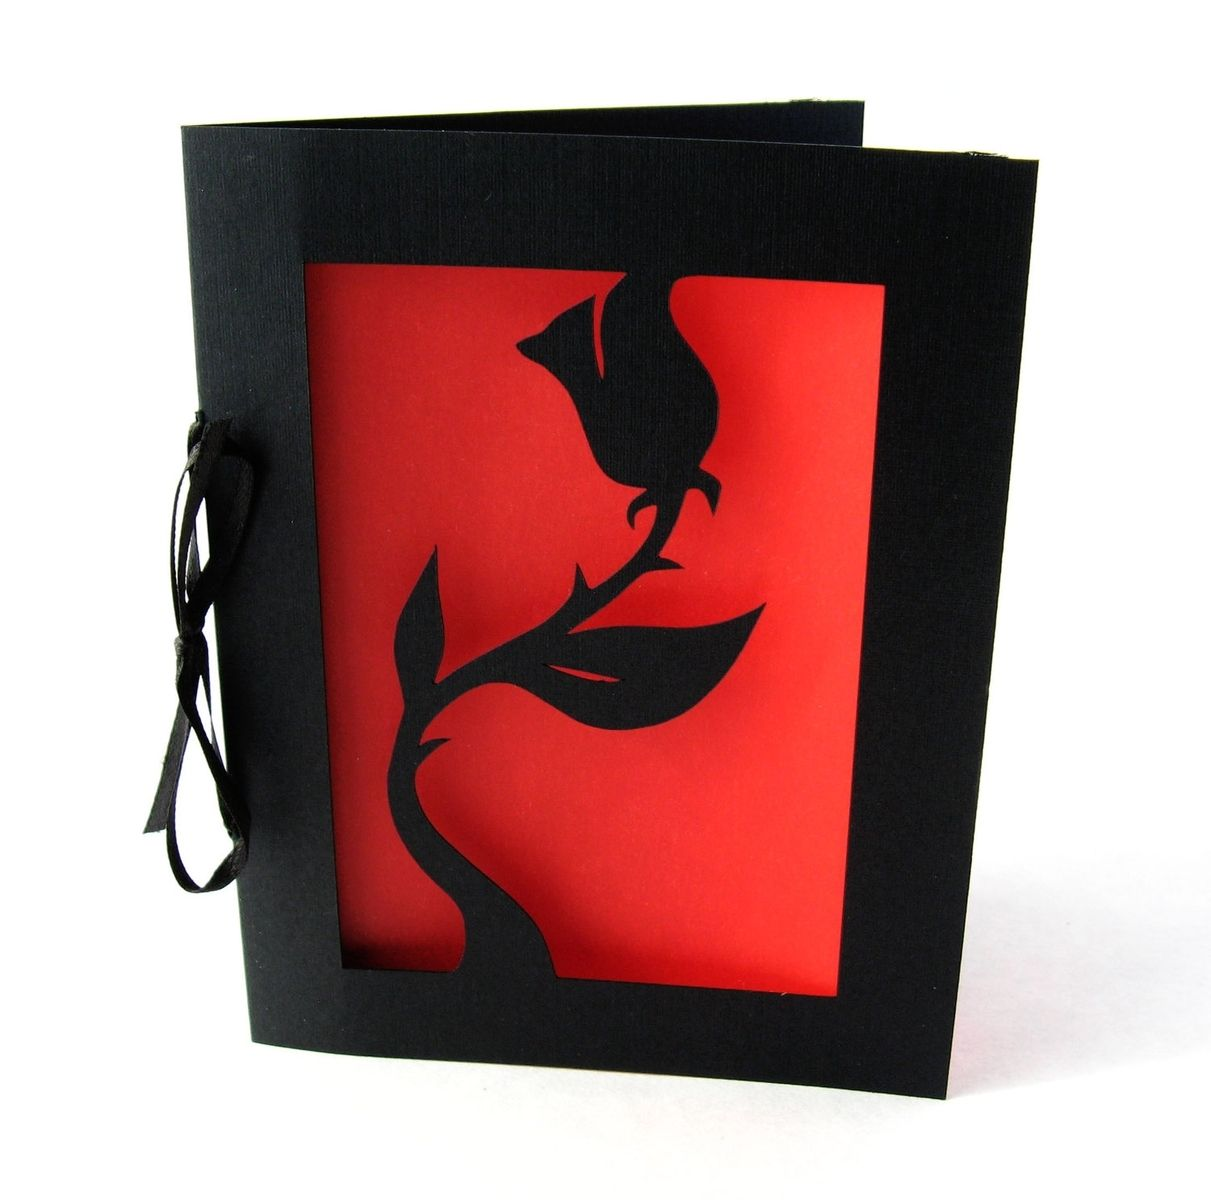 Buy A Hand Made Black Rose Valentine Cut Paper Silhouette